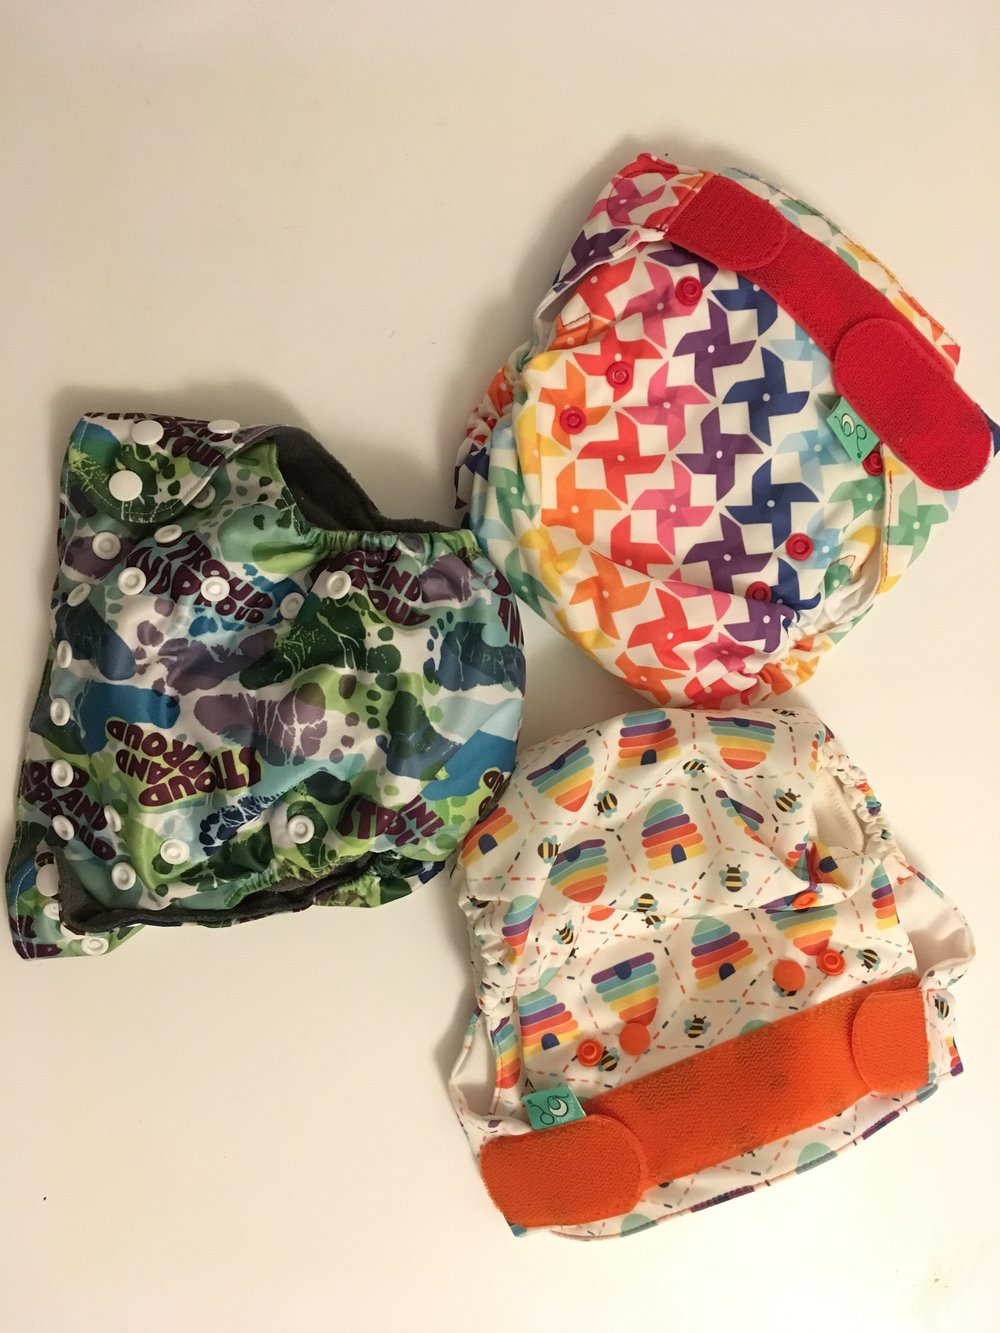 Some lovely colourful re-usable nappies.